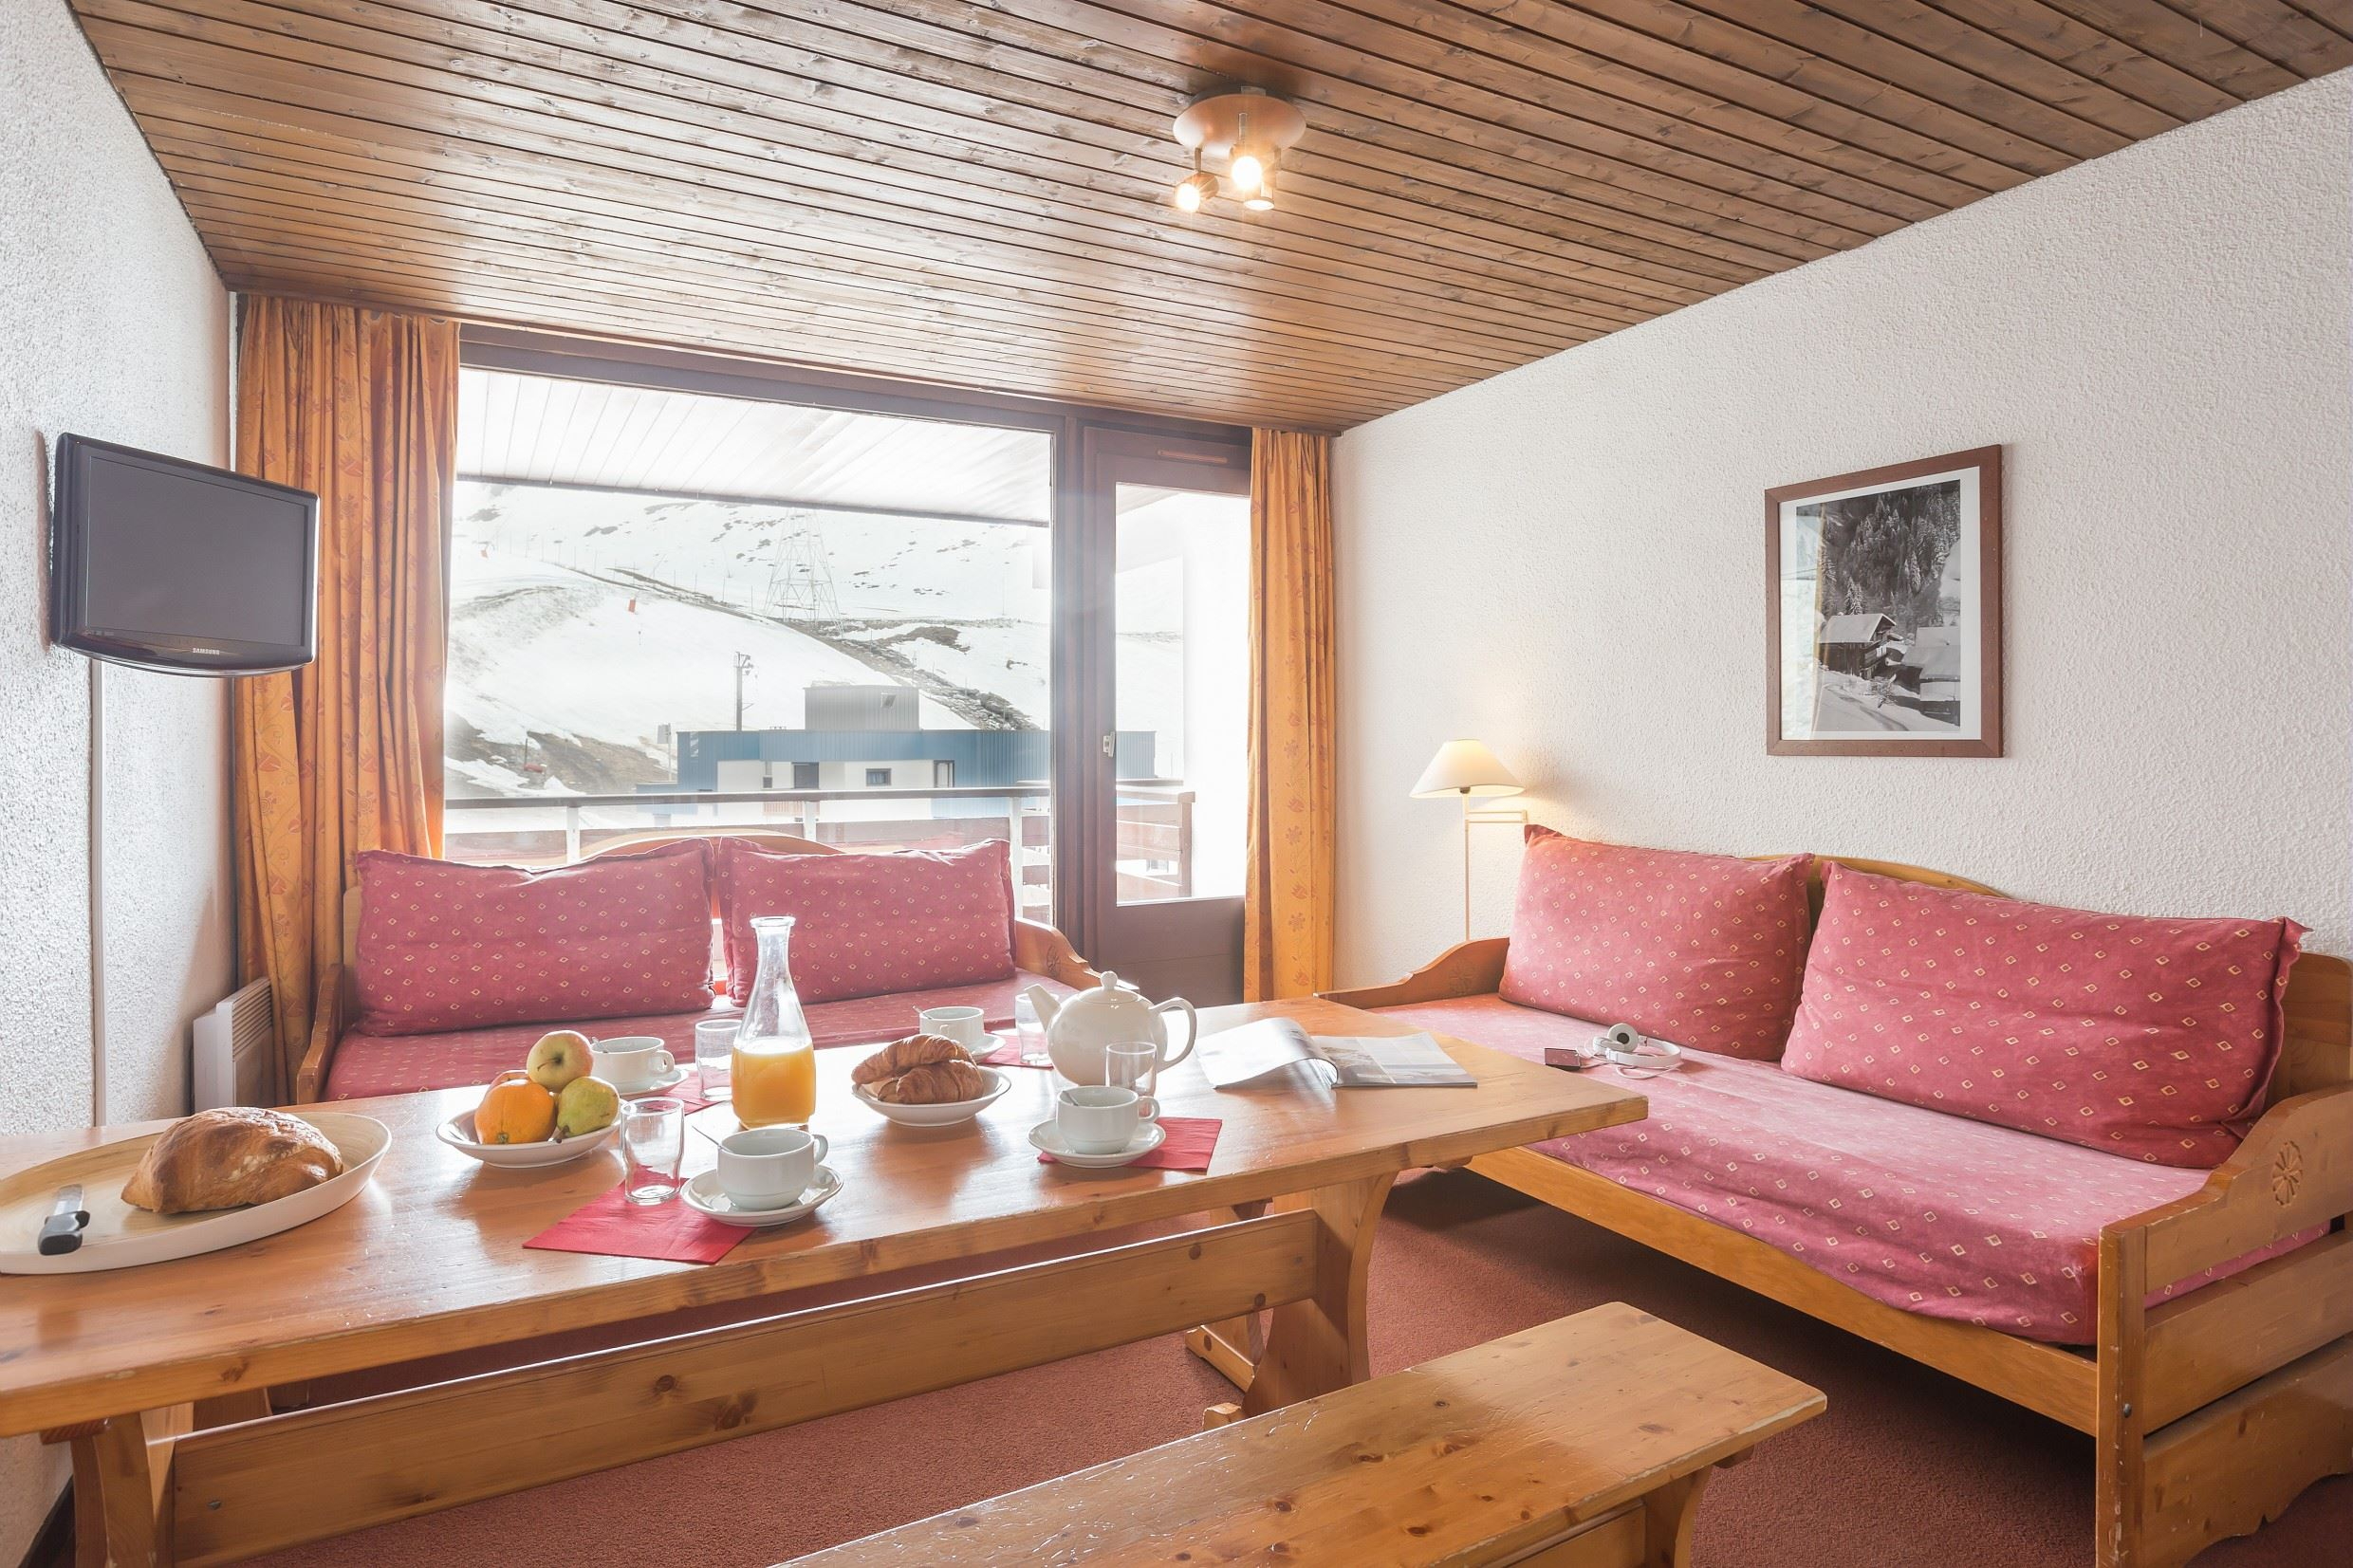 Residence Schuss - Apartment 2 rooms 6 persons south facing with terrace and view on the slopes